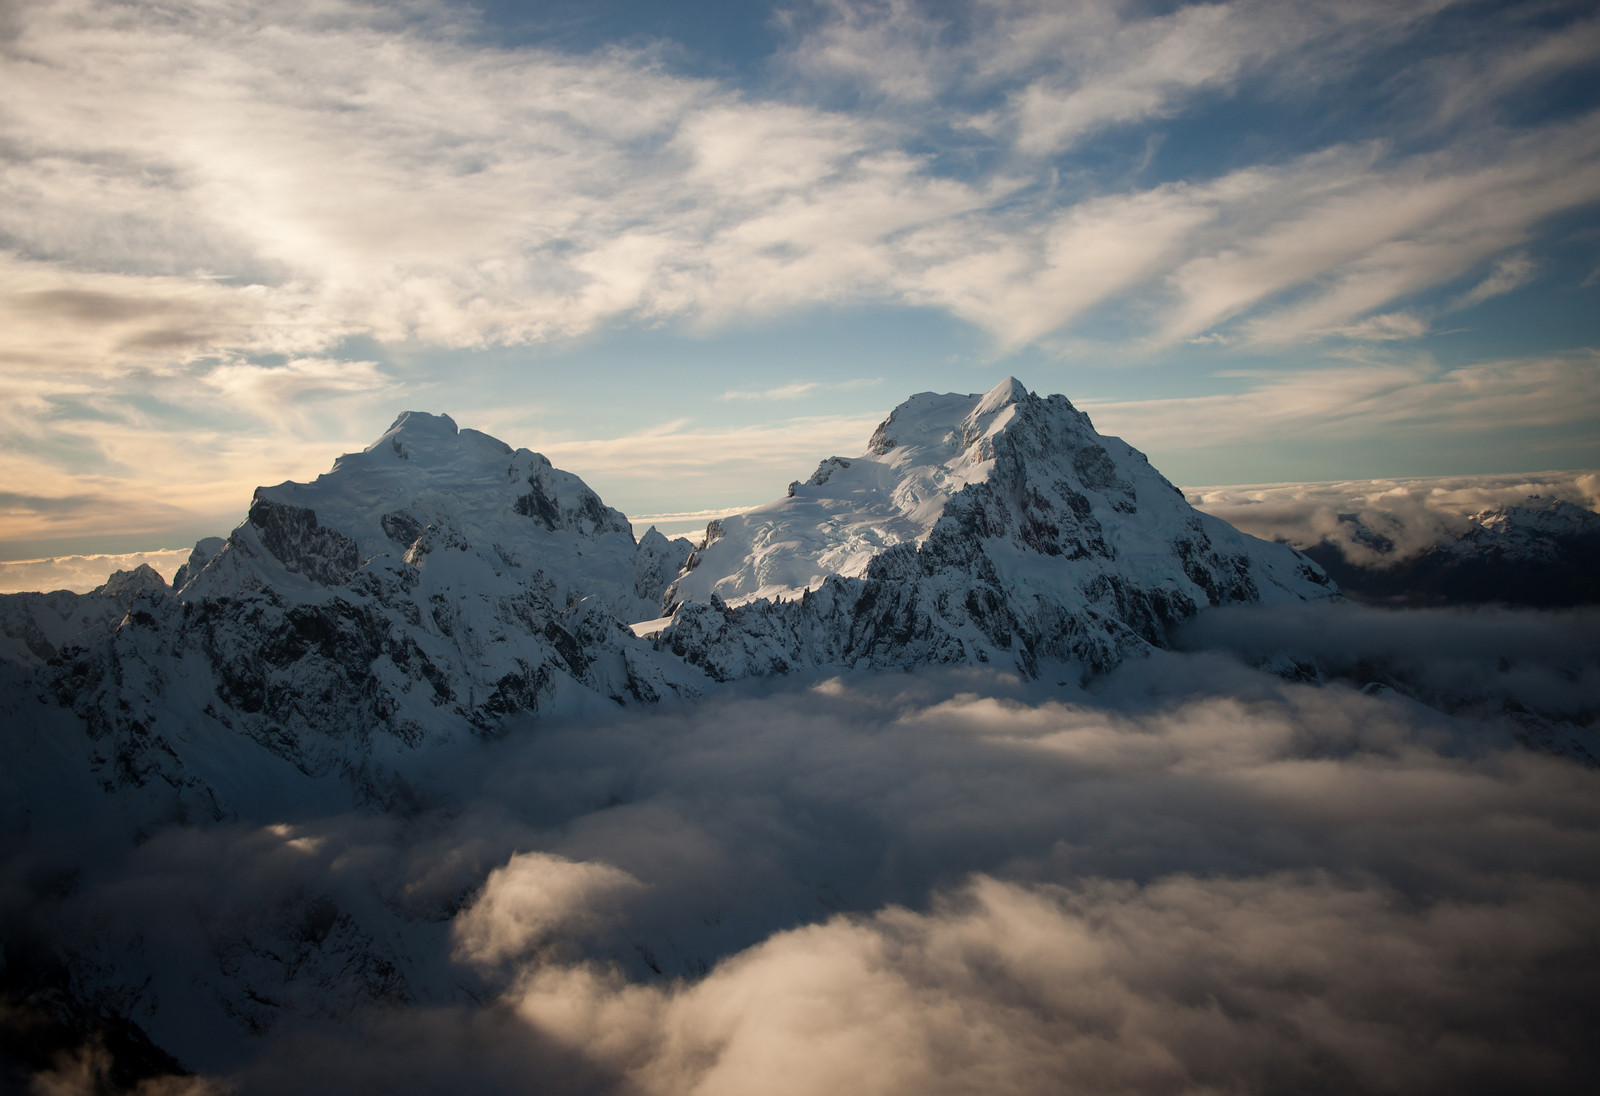 The amazing peaks of the Southern Alps (New Zealand)